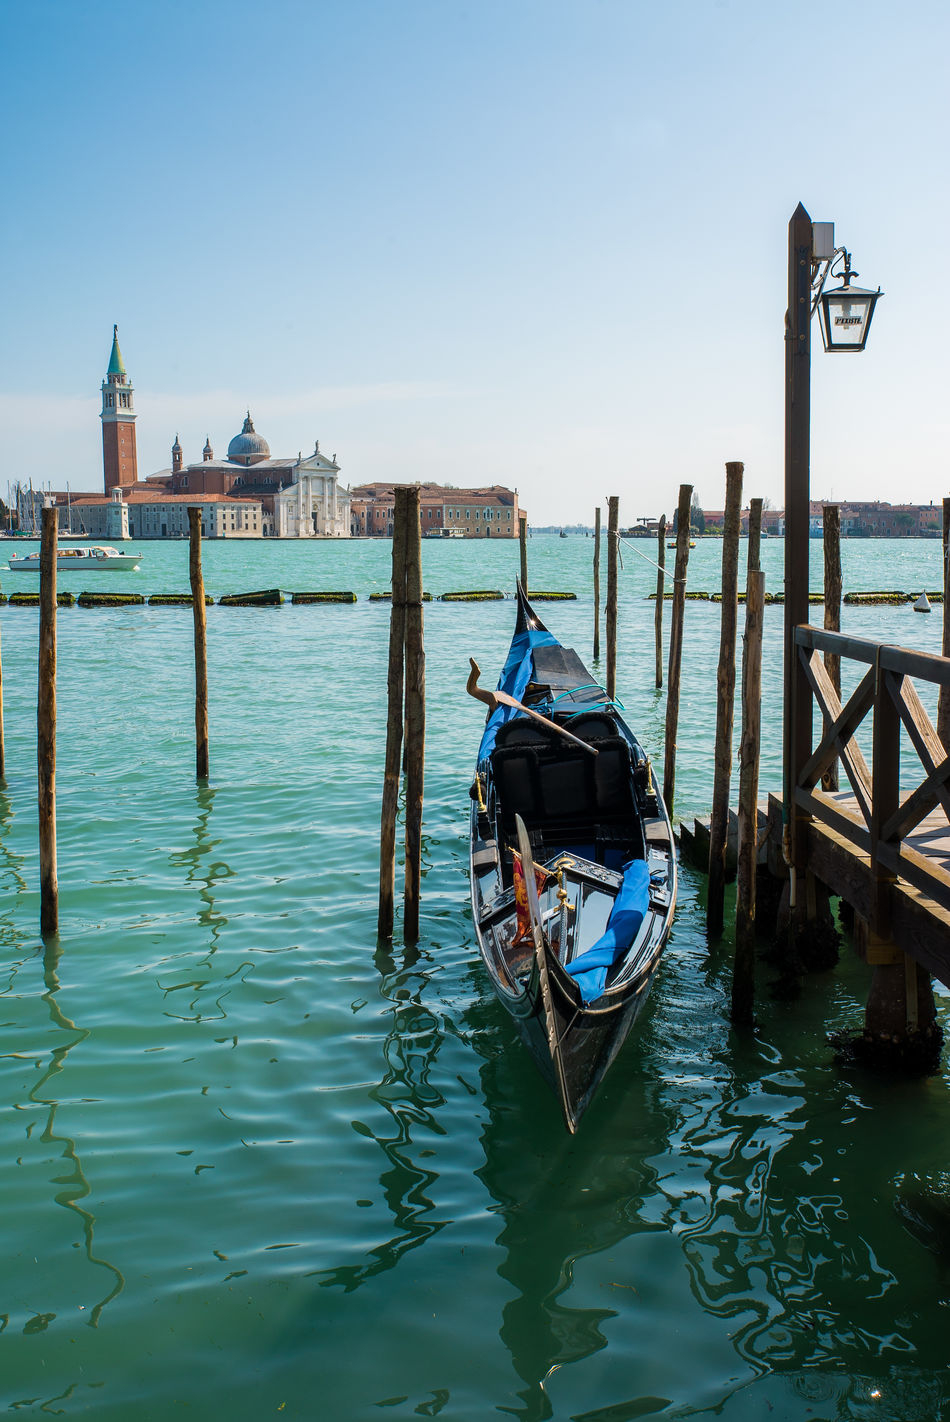 Boat Canal Canals Church City Color Cultures Europe Gondola Gondola - Traditional Boat Italian Lagoon Lamp Love Nautical Vessel Romance San Marco Sky Tipical Traditional Transportation Travel Travel Destinations Water Ways